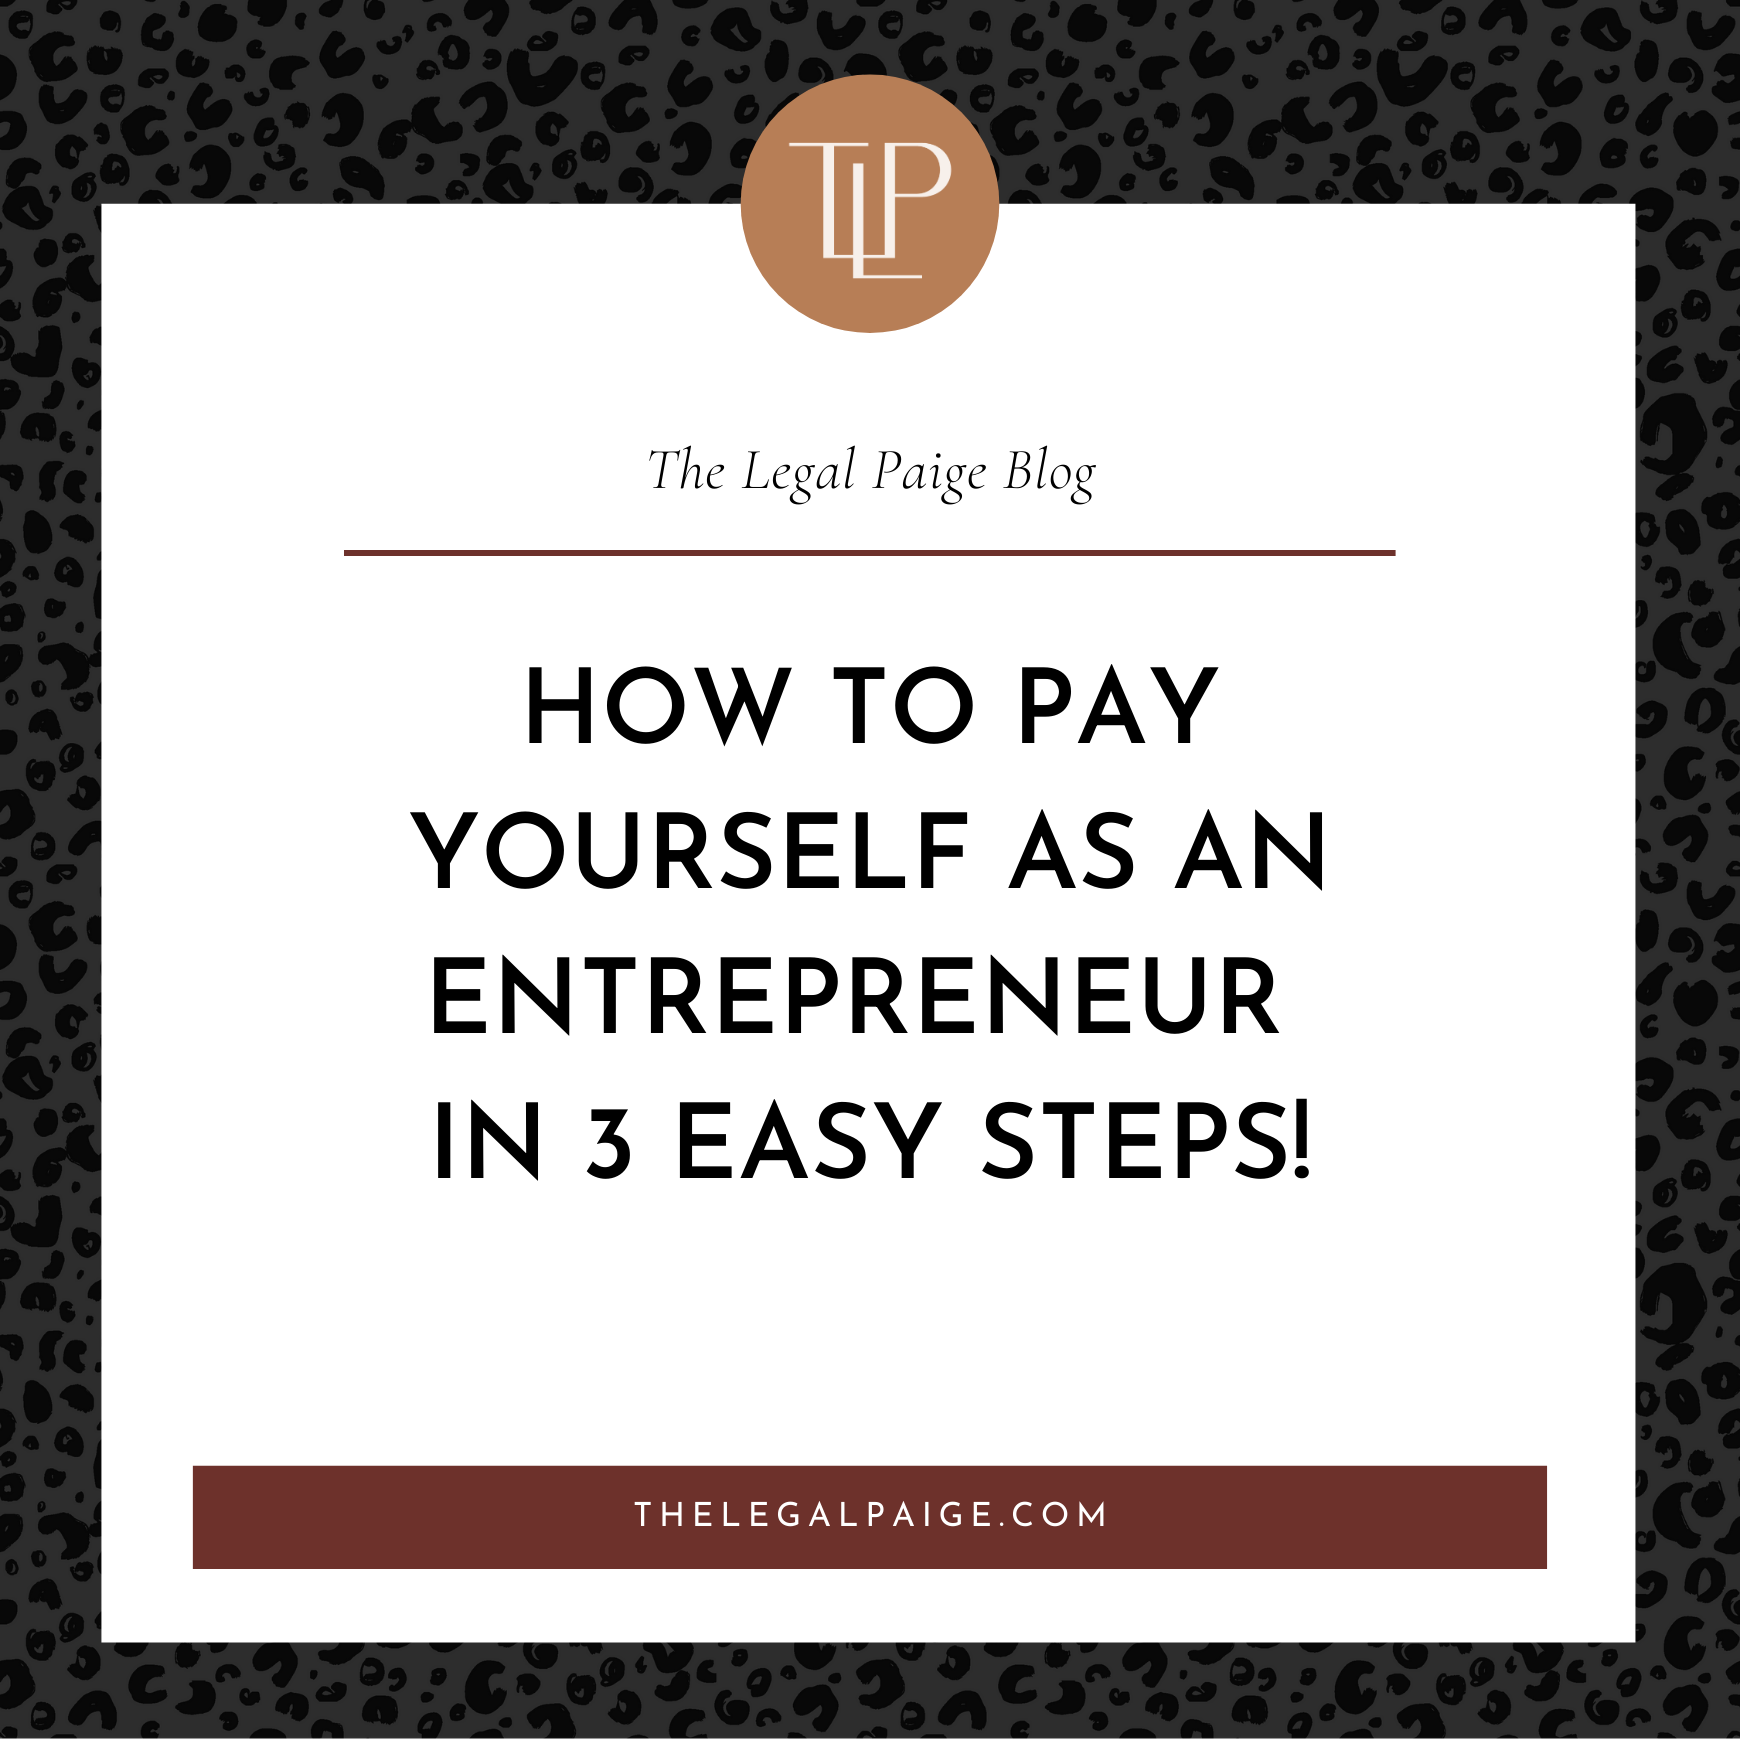 How Do I Pay Myself as an Entrepreneur?